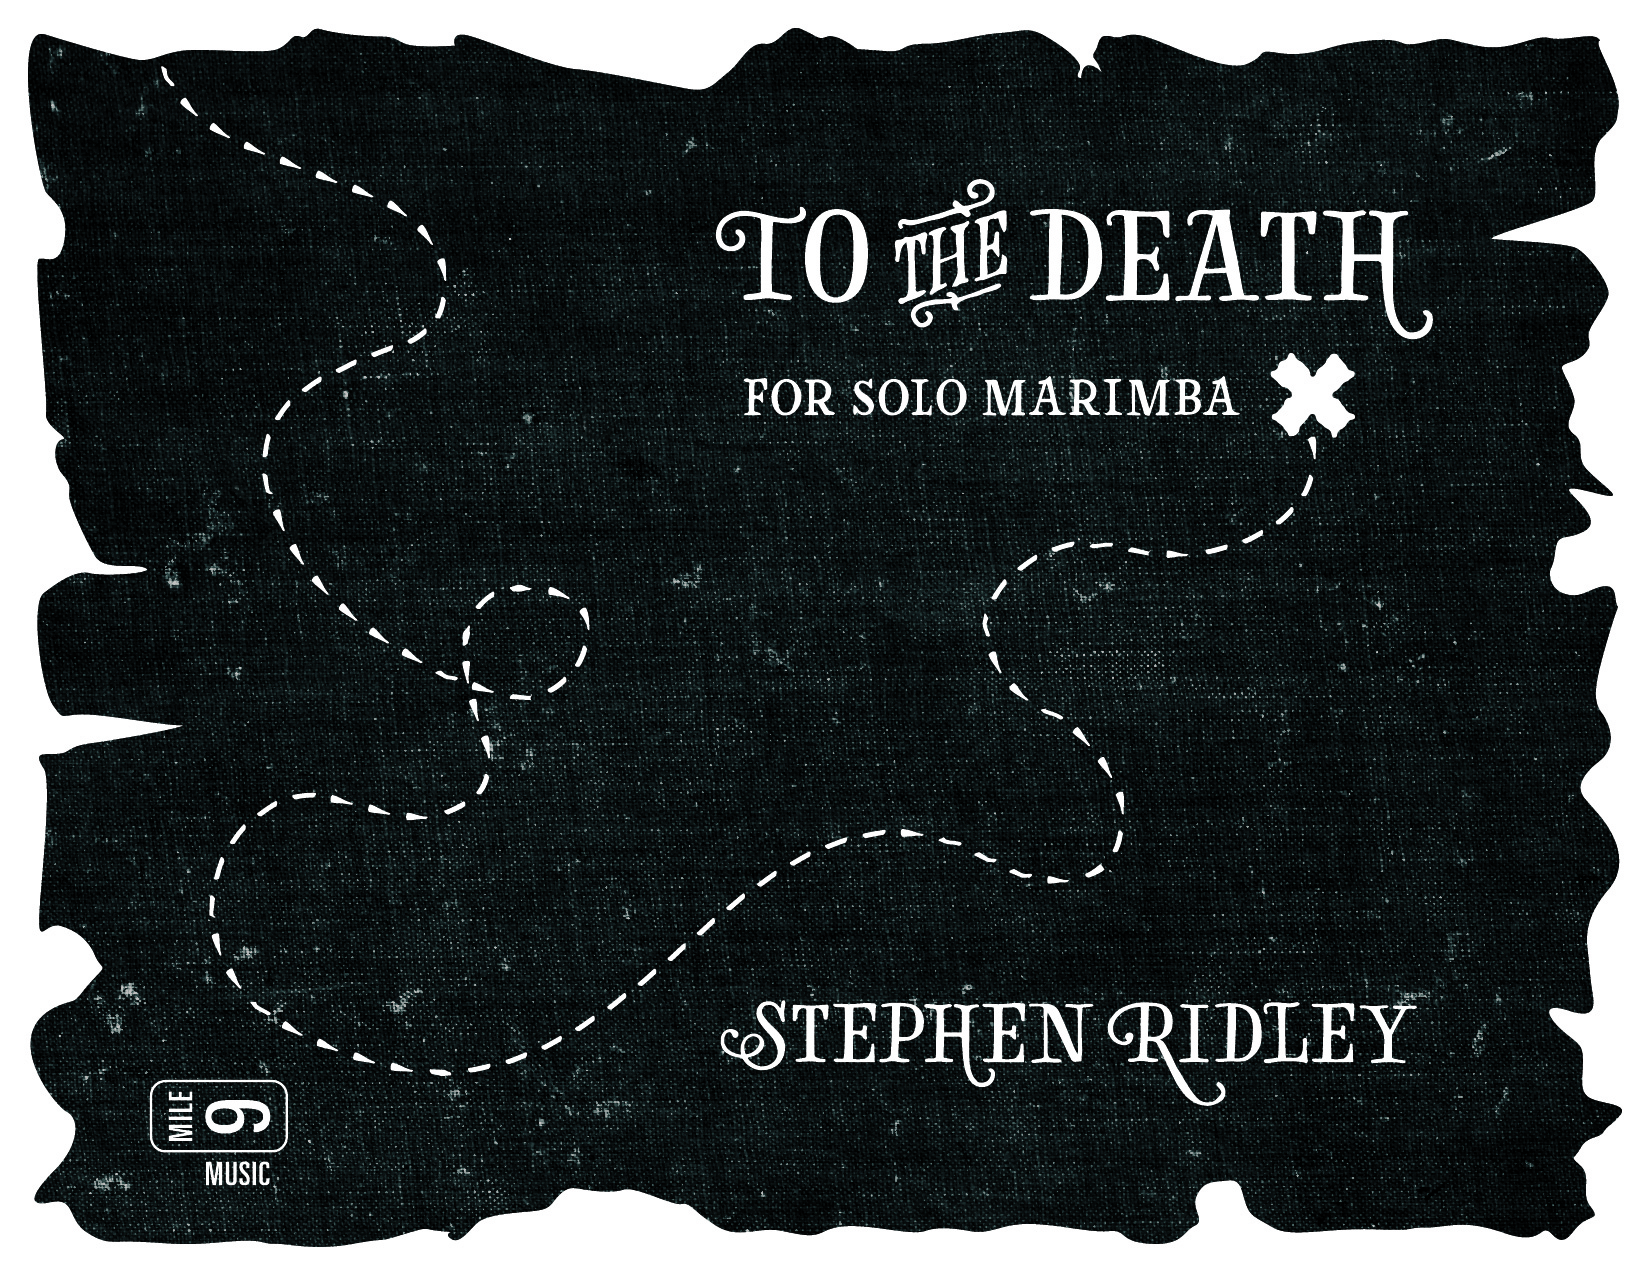 Stephen Ridley - To the Death for Solo Marimba - Title Card